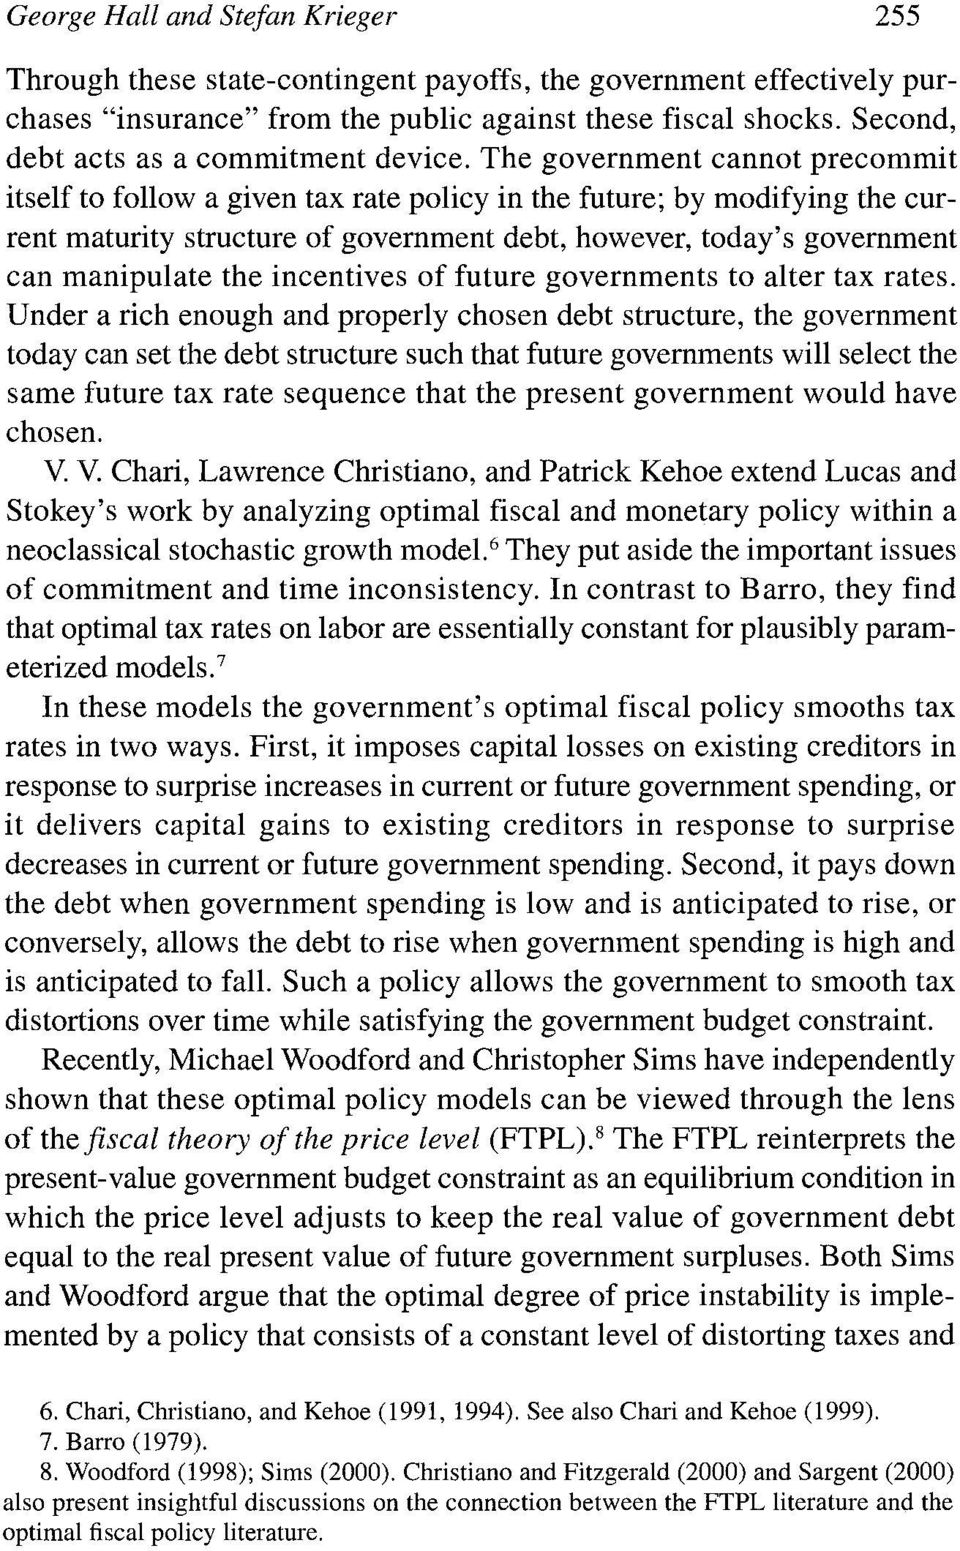 The government cannot precommit itself to follow a given tax rate policy in the future; by modifying the current maturity structure of government debt, however, today's government can manipulate the